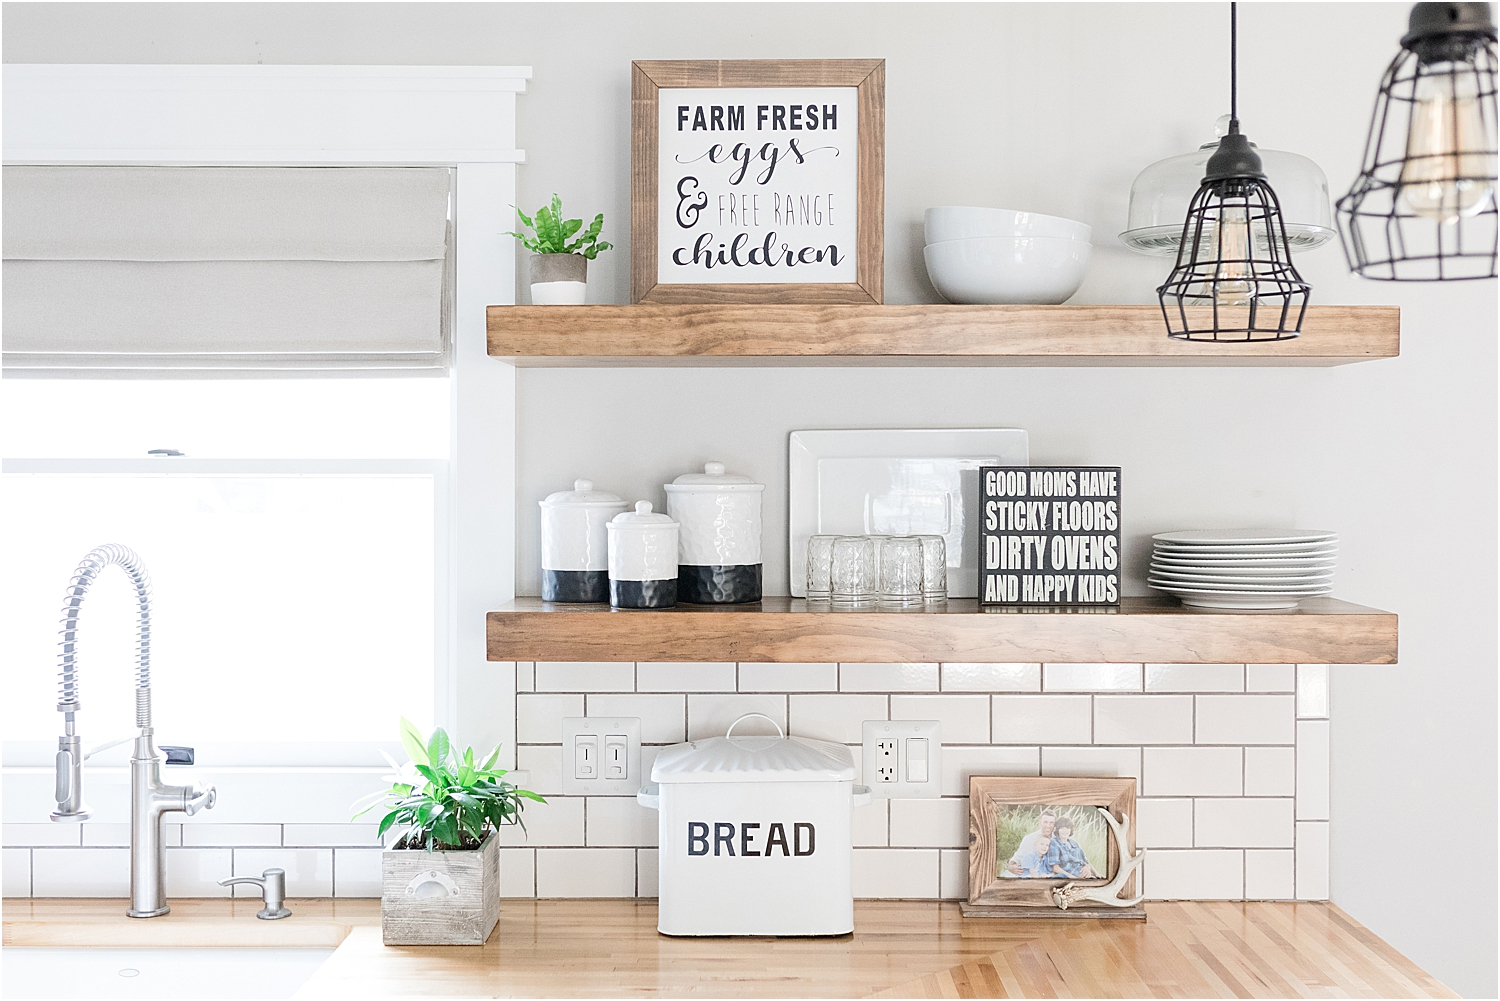 FLOATING SHELVES - CUSTOMIZE A SHELF TO FIT YOUR SPACE AND STYLE.